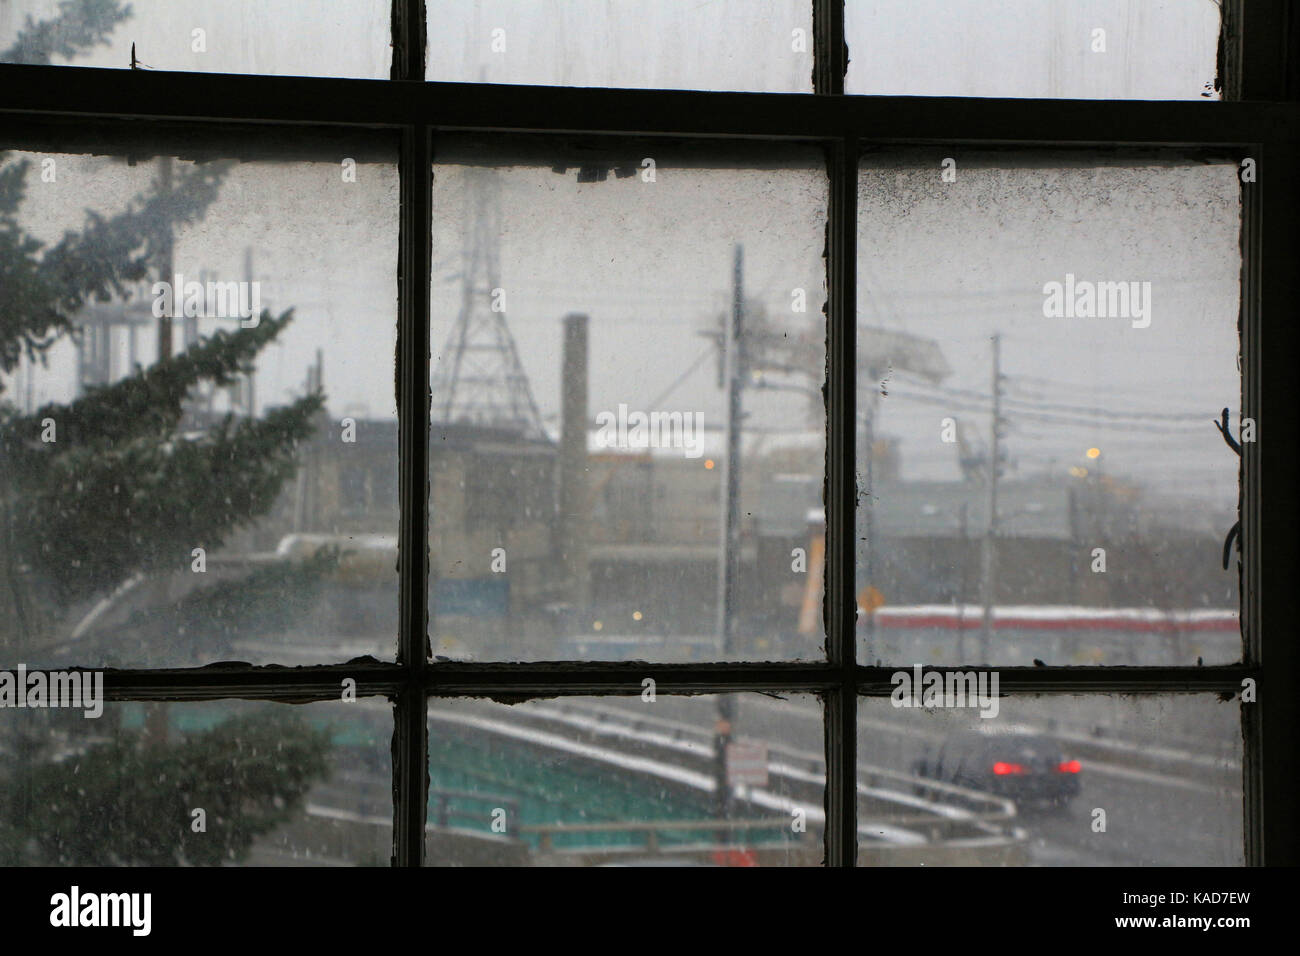 Cloudy winter day in an industrial area, viewed through office window of former E B Eddy paper mill, Ottawa, Canada, Stock Photo